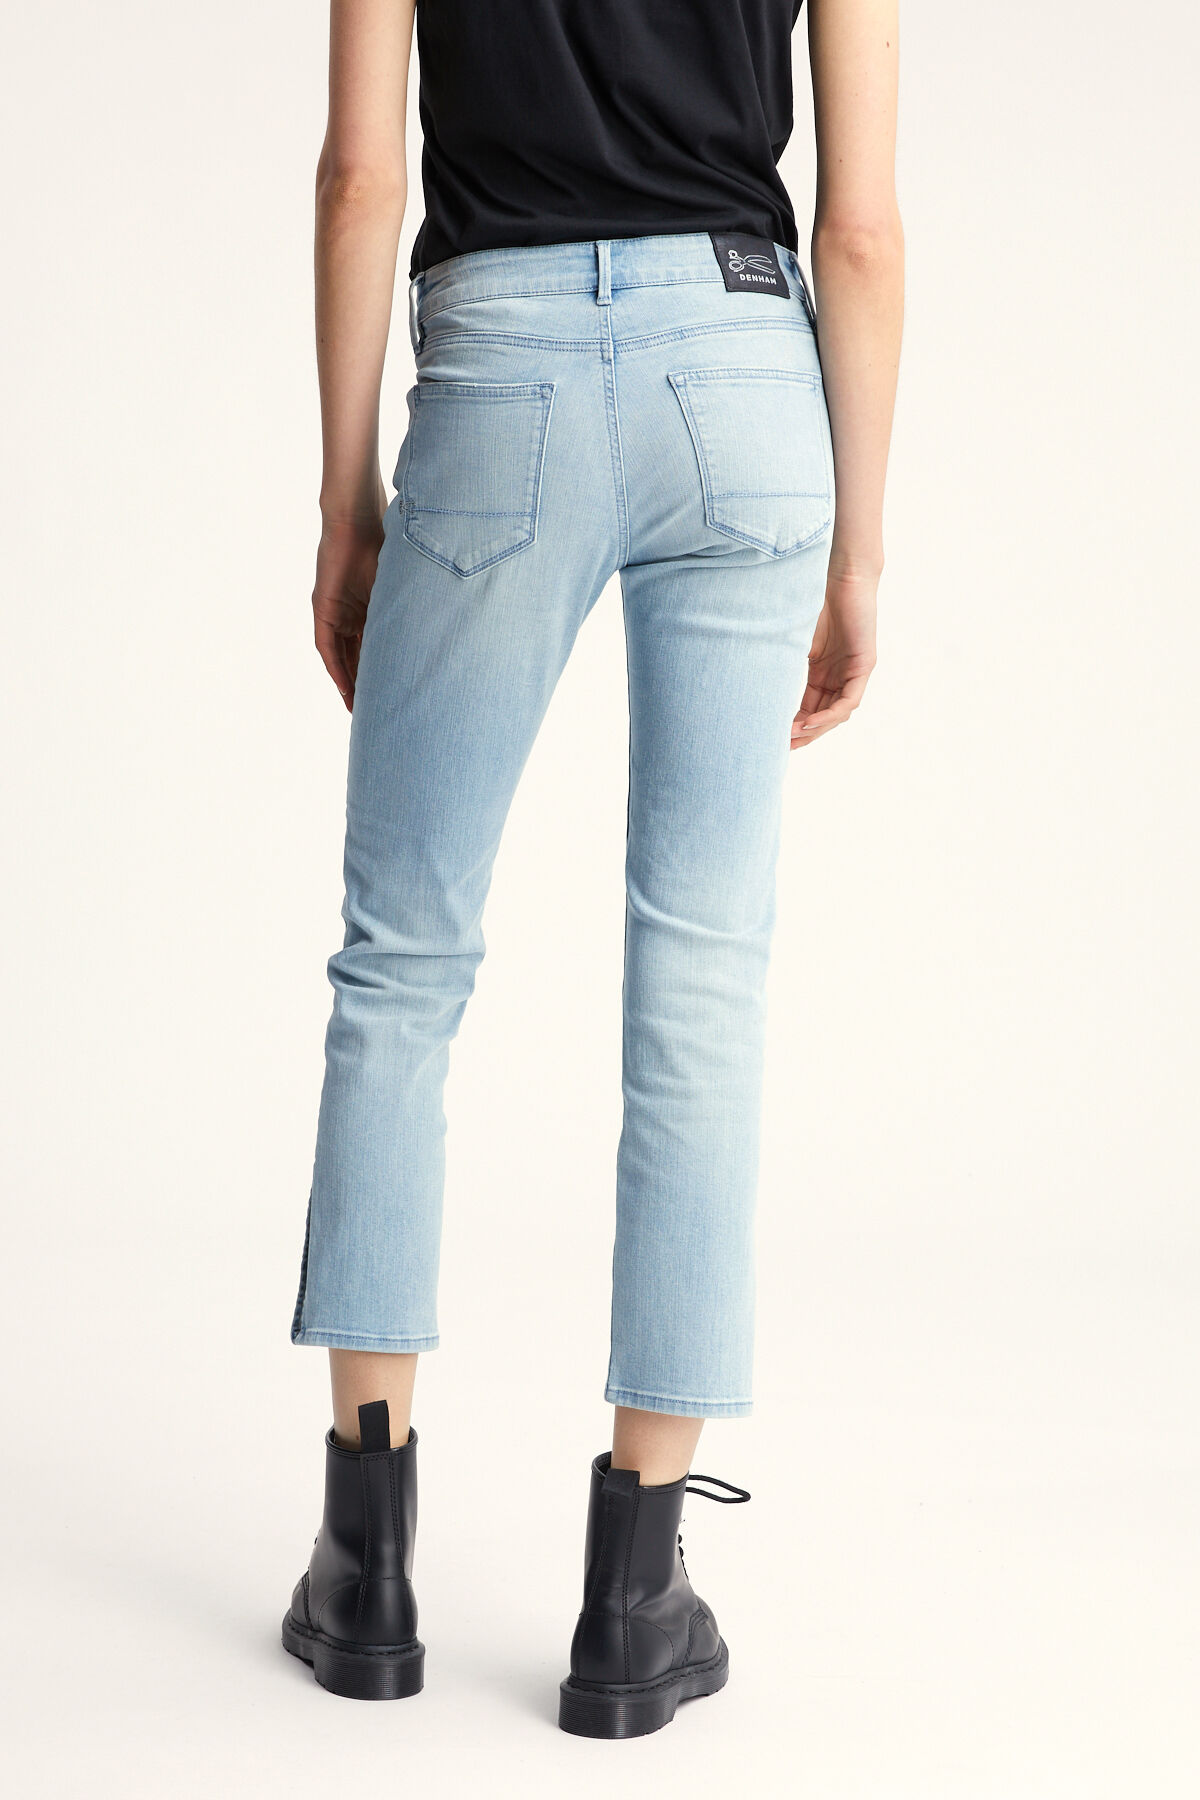 LIZ ANKLE Lightweight, Cool Blue Denim - Straight Fit